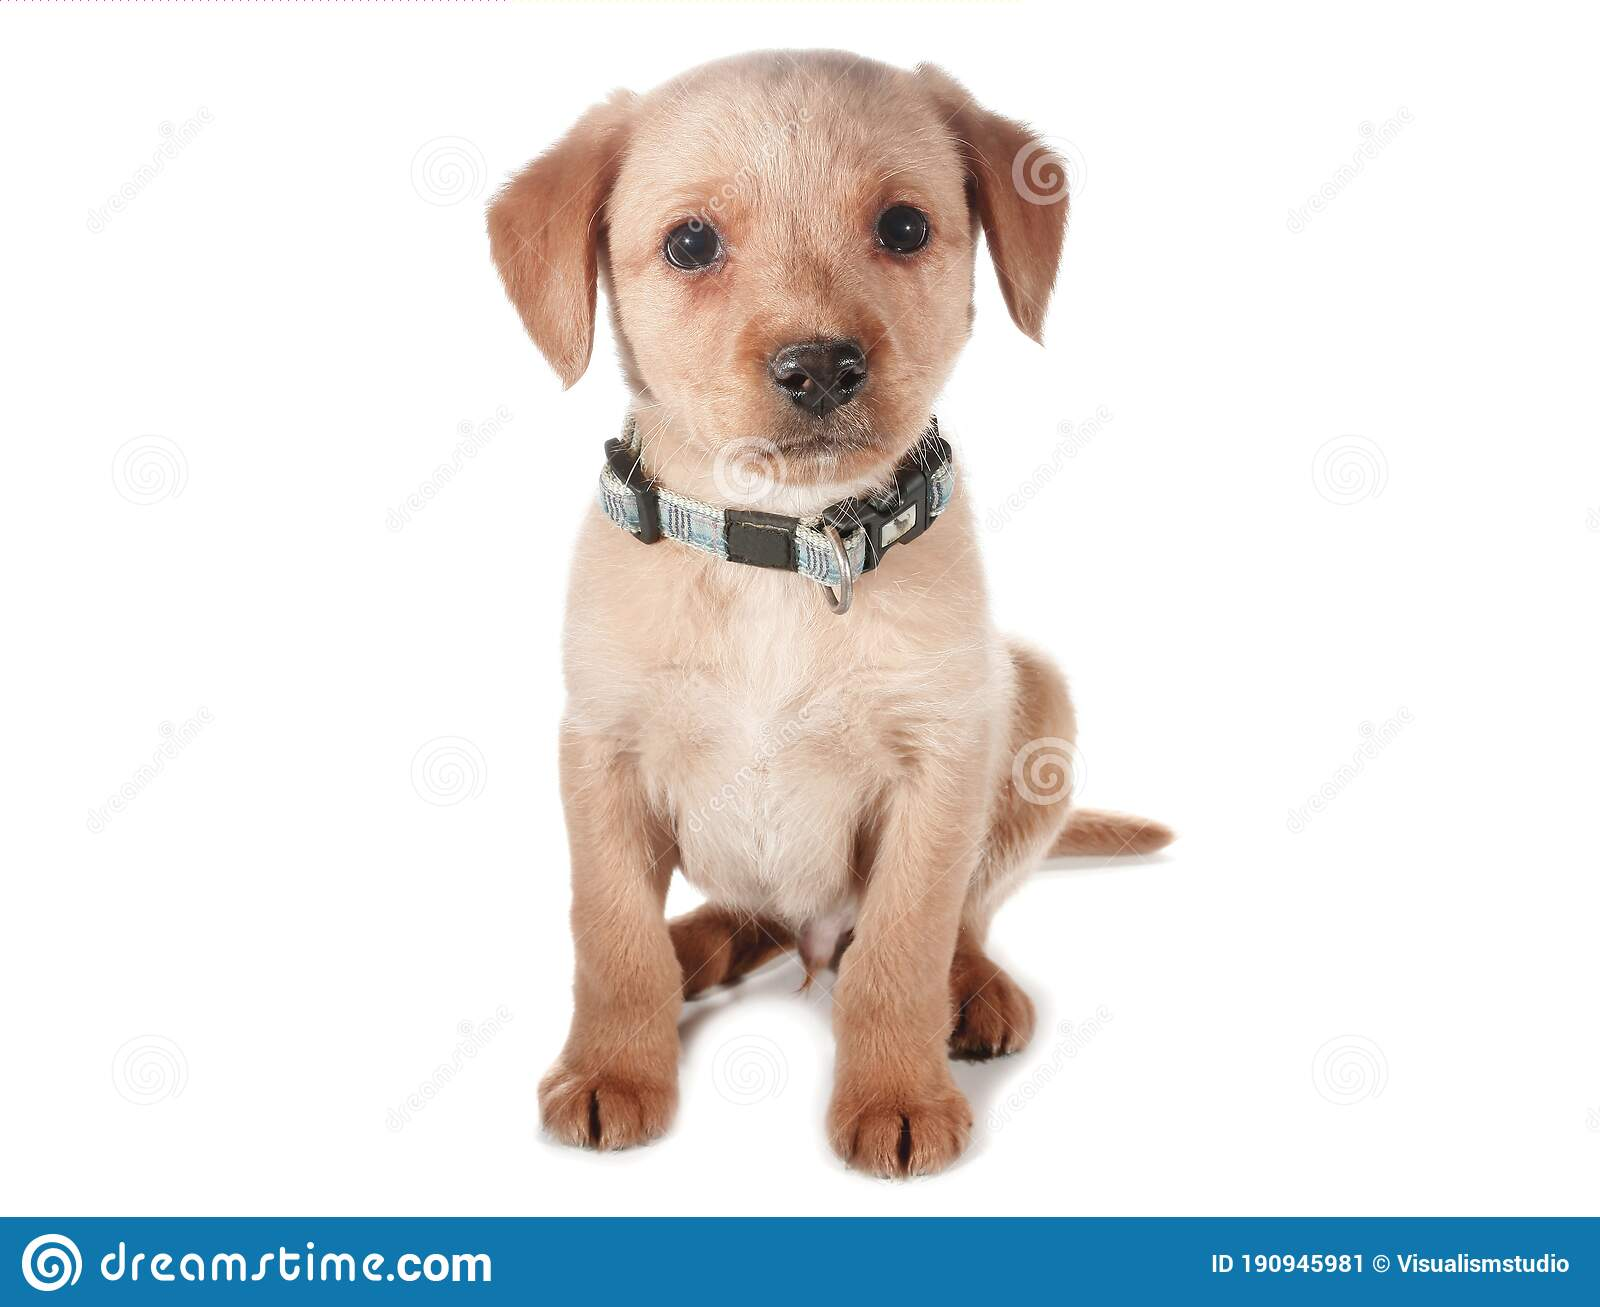 Brown Dog Puppies Funny Smiling Puppy Dog A Paw And Cute Puppy On White Stock Image Image Of Baby Happy 190945981